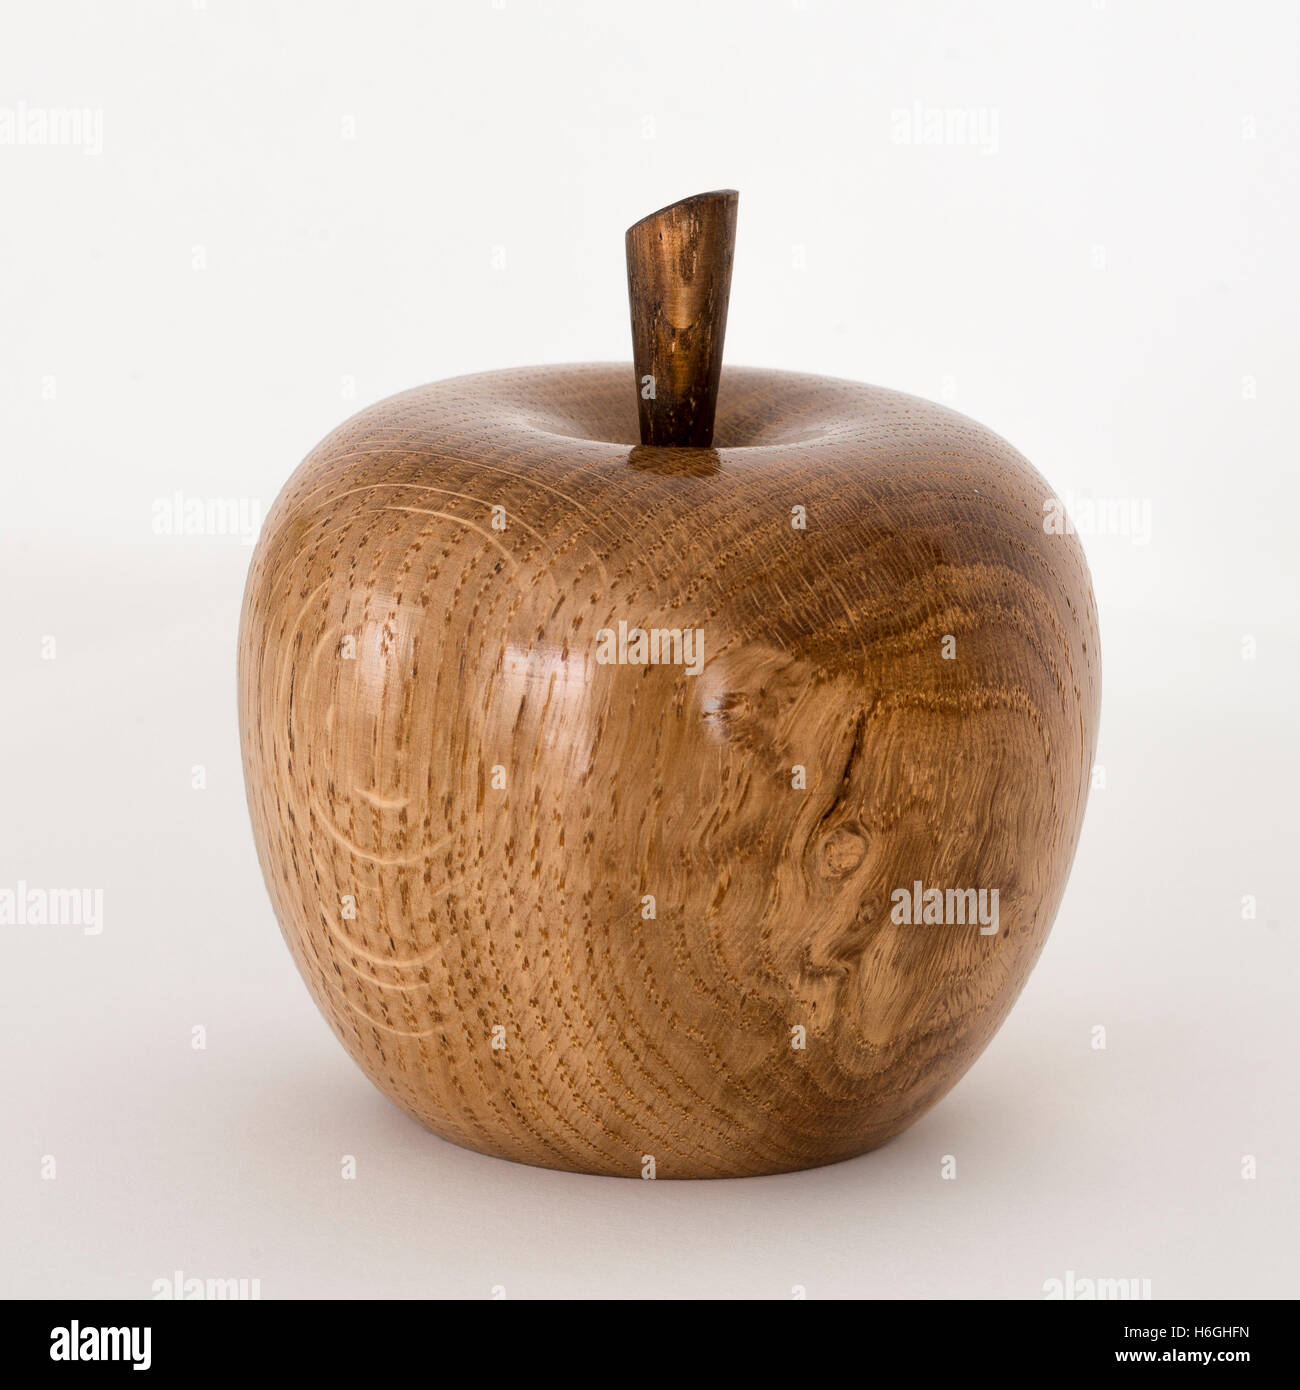 Highly polished beautiful wooden turned pear fruit by John Staffird, Devon wood-turner - Stock Image